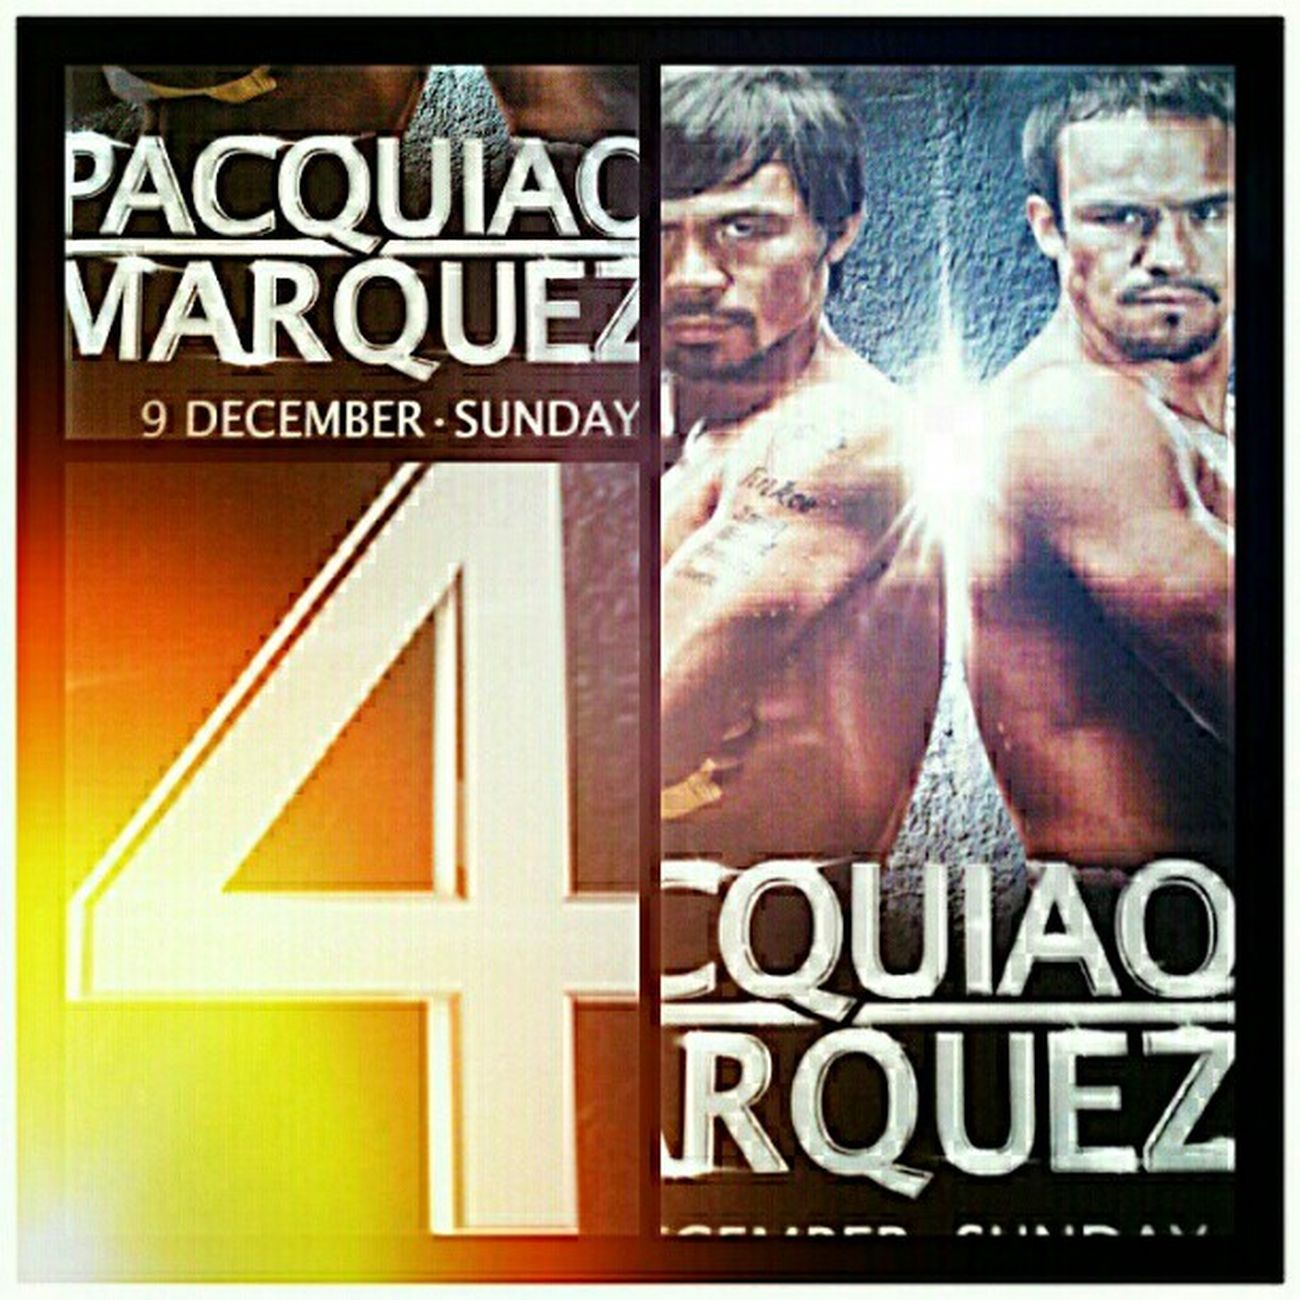 Pacquiao Marquez 4 Fight Go Pinoy Proud To  Be Filipino Instapic Haha MingawZzz